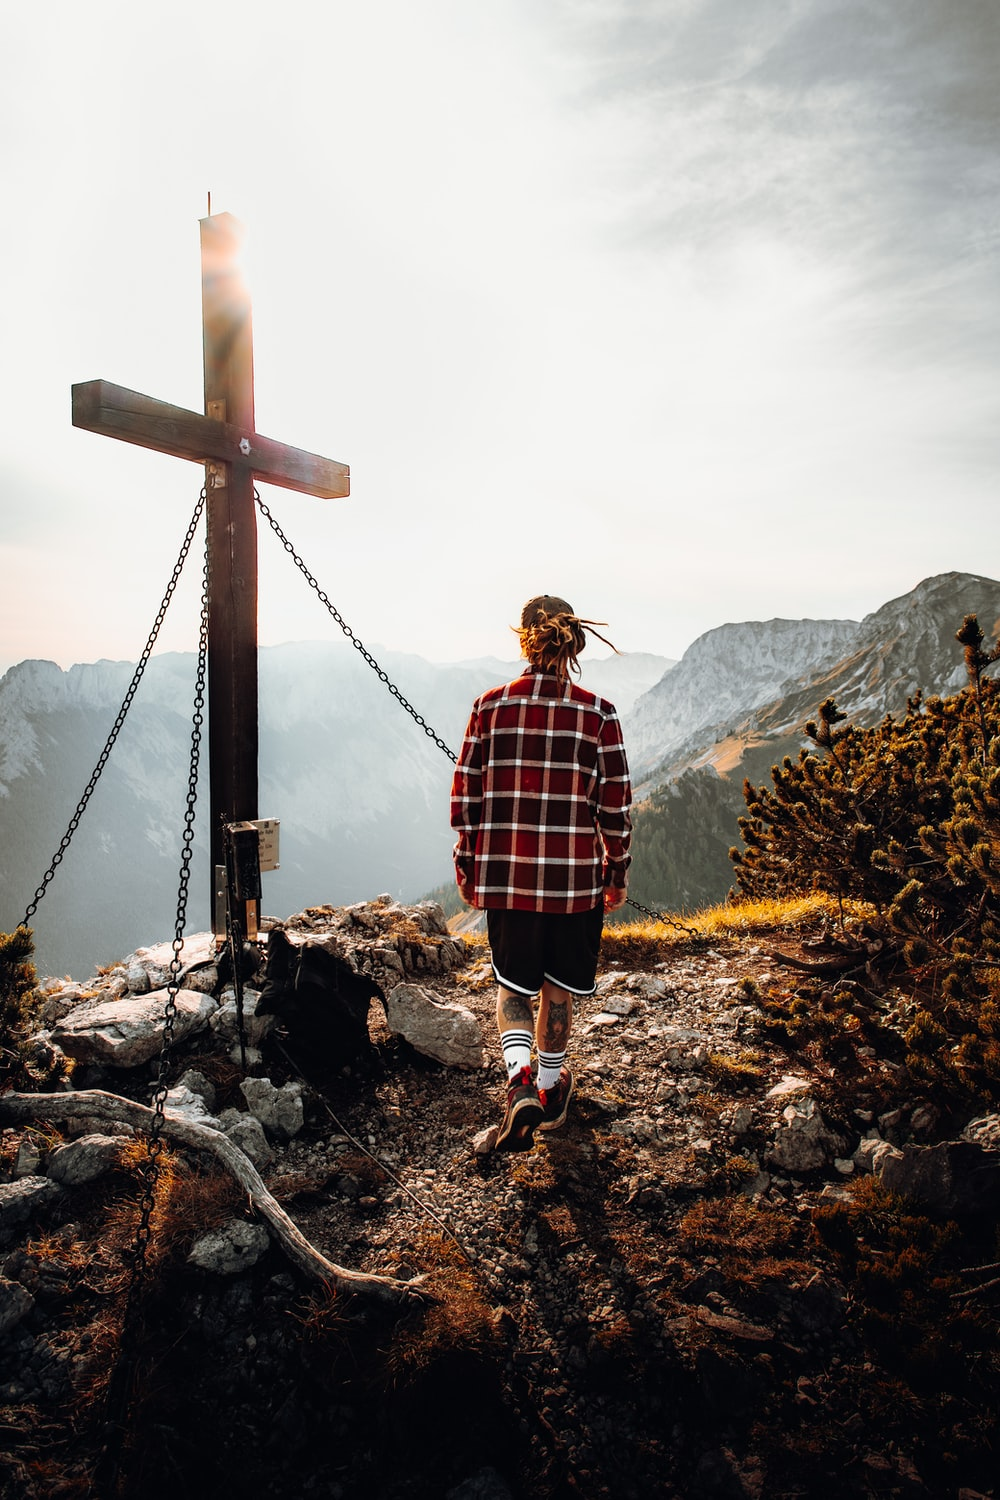 woman in red and black plaid dress shirt standing on brown wooden cross during daytime